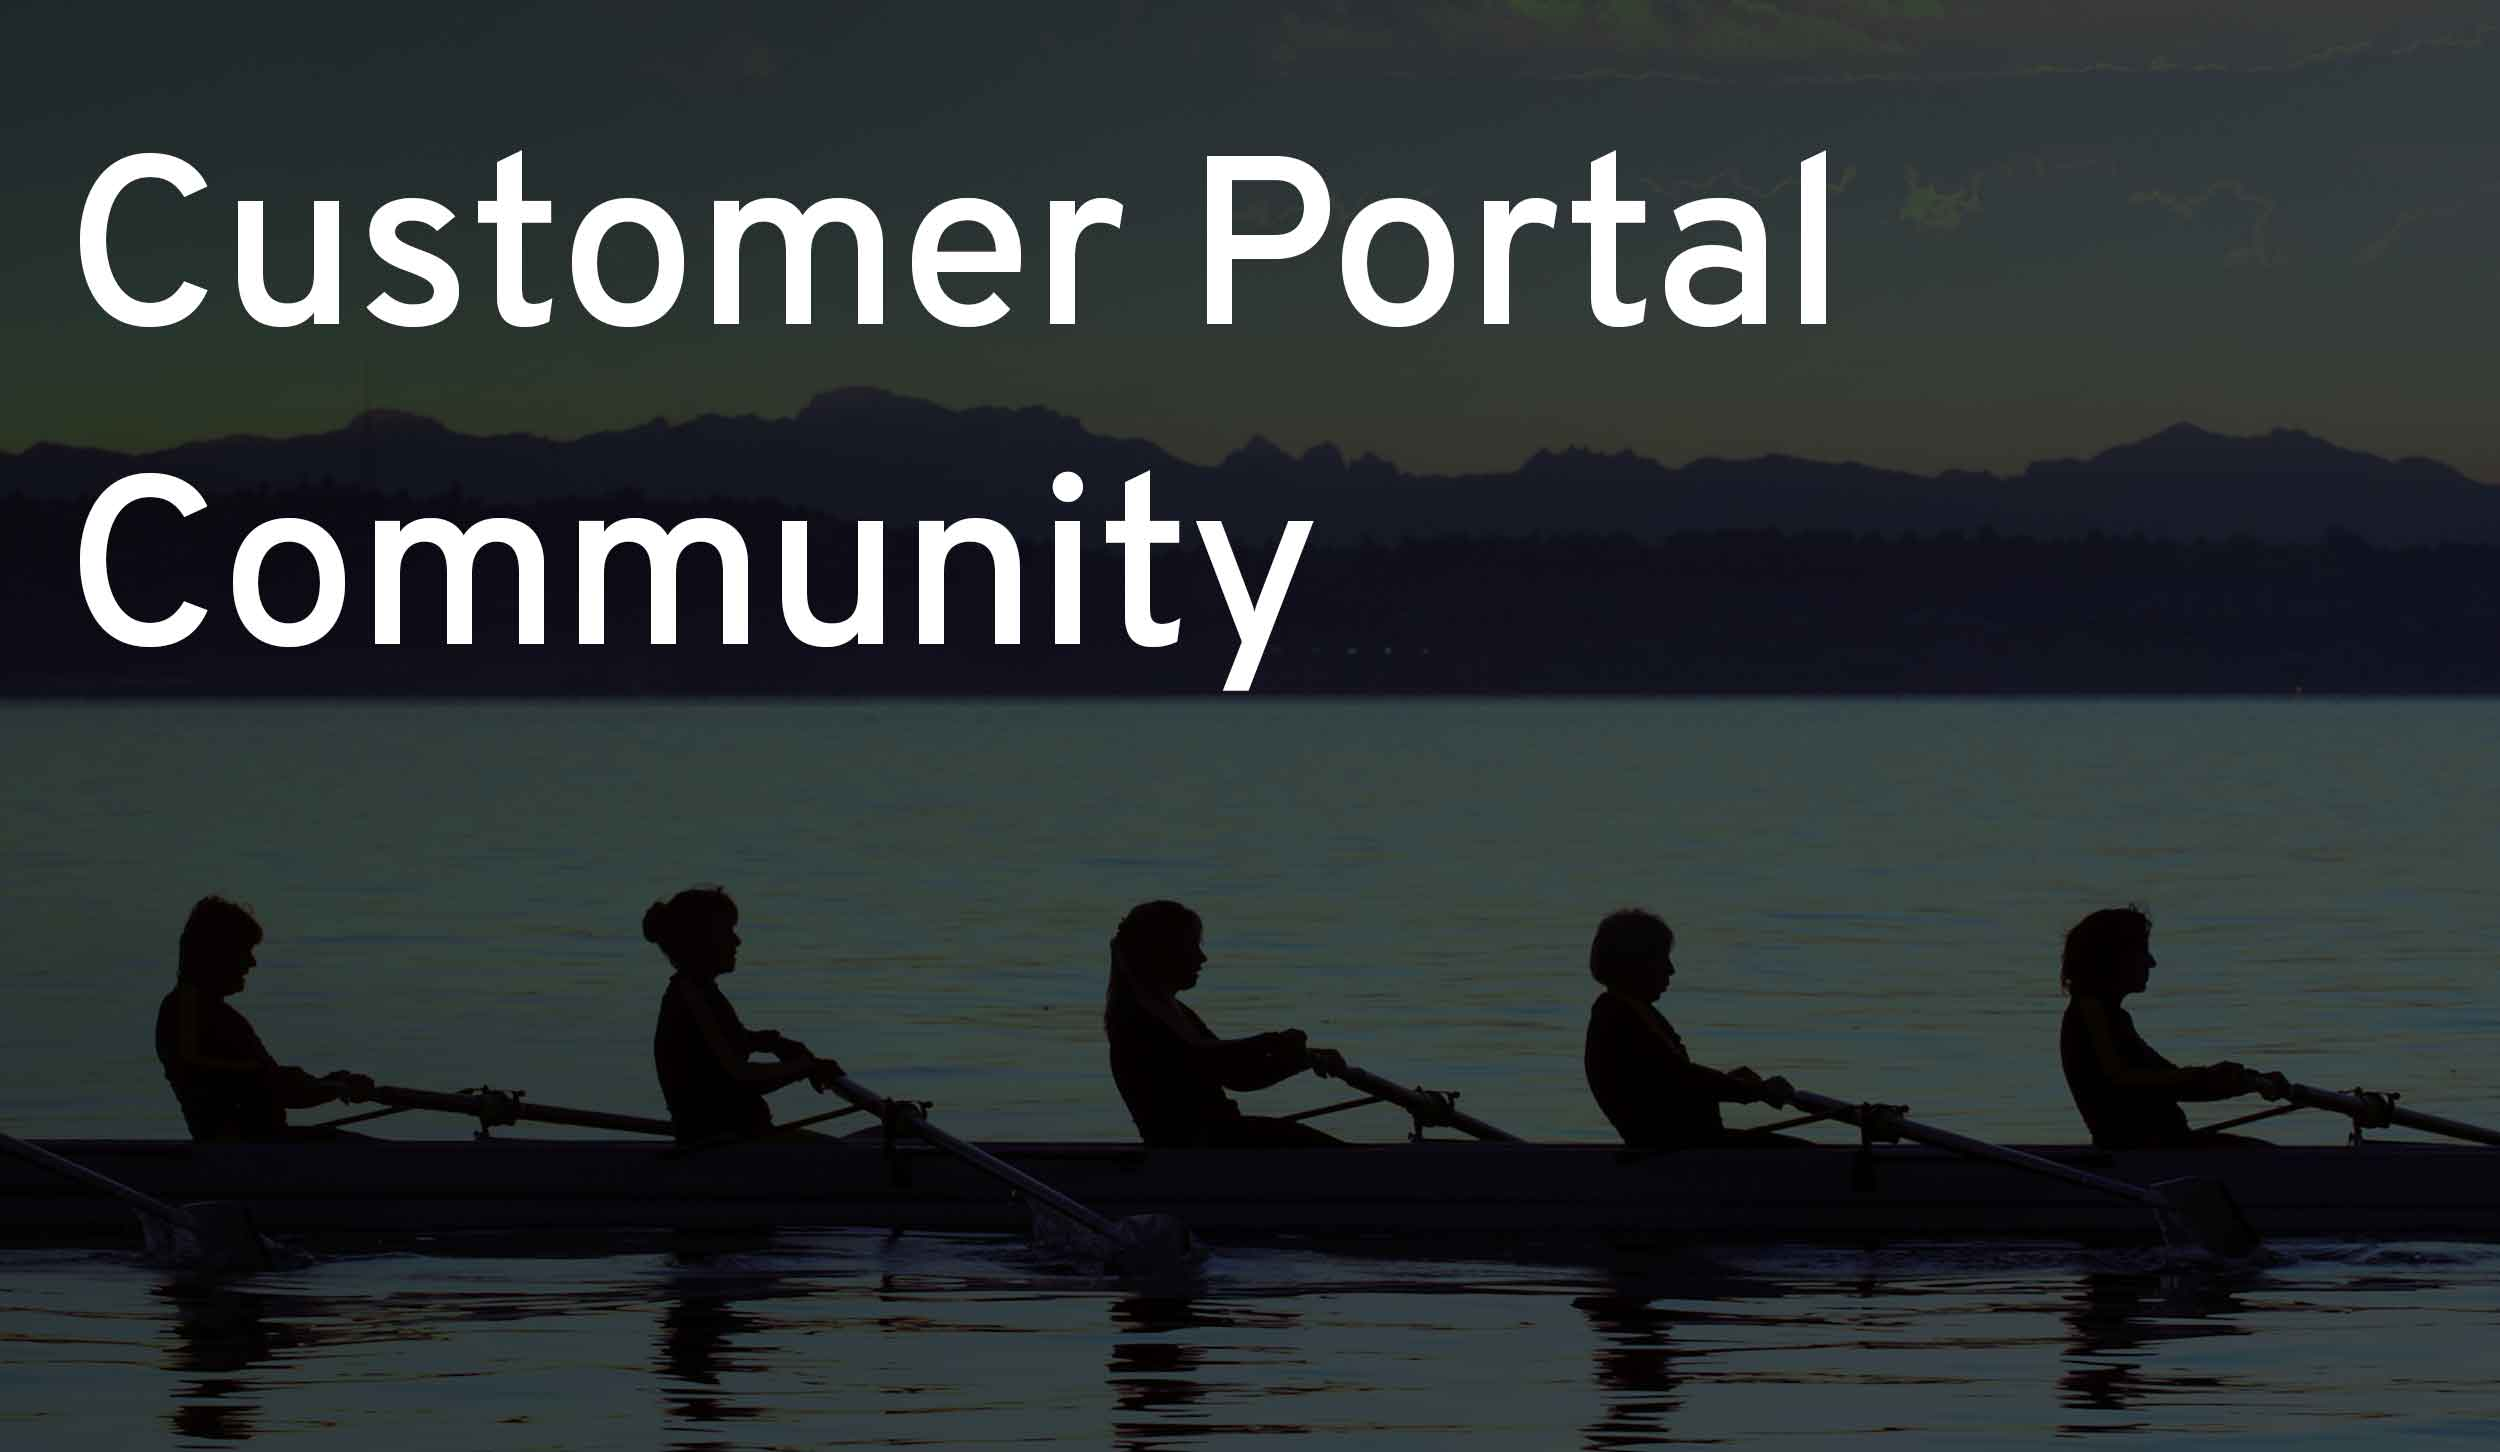 An all-new hub page for our customer community